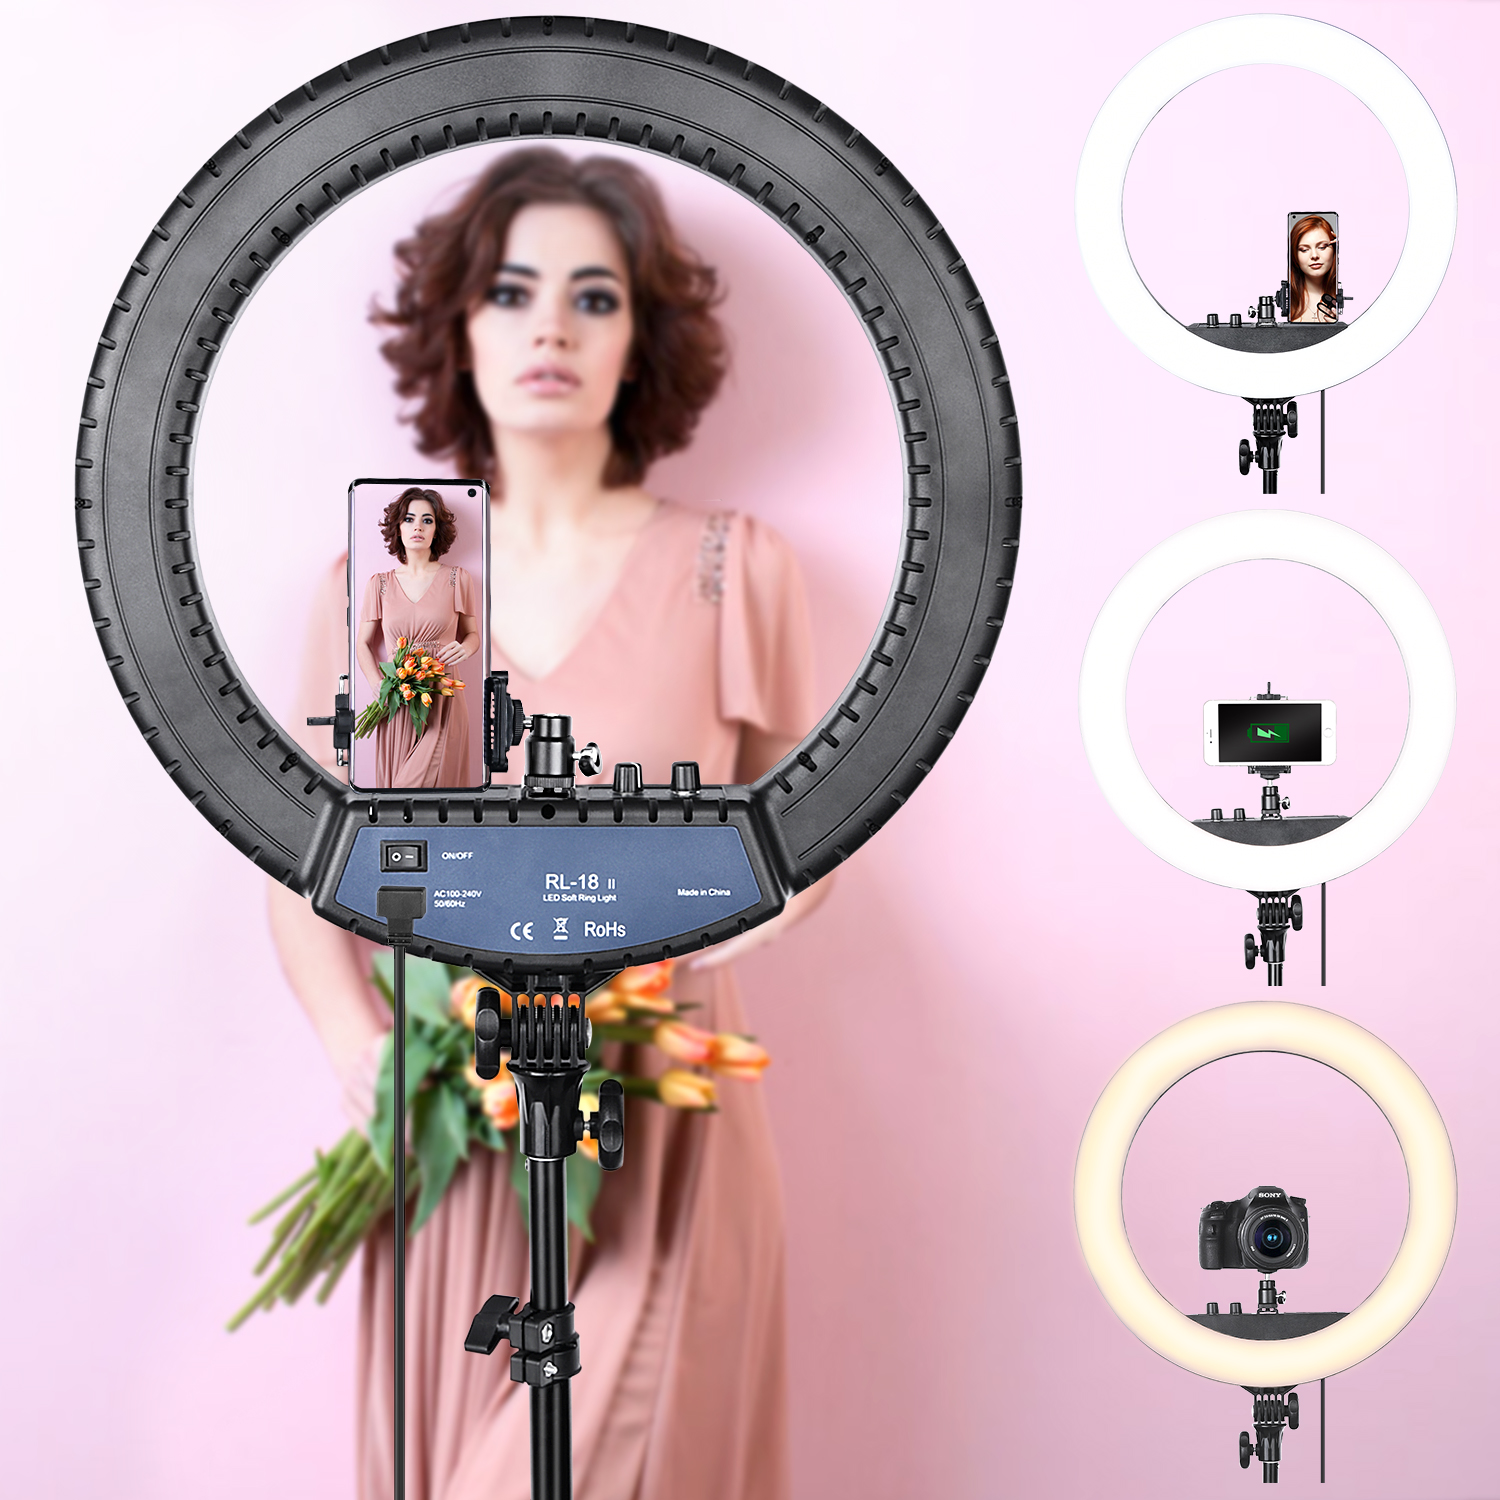 FOSOTO RL 18II Led Ring Light 18 Inch Ring Lamp 55W Ringlight Photography Lamp With Tripod FOSOTO RL-18II Led Ring Light 18 Inch Ring Lamp 55W Ringlight Photography Lamp With Tripod Stand For Phone Makeup Youtube Tiktok